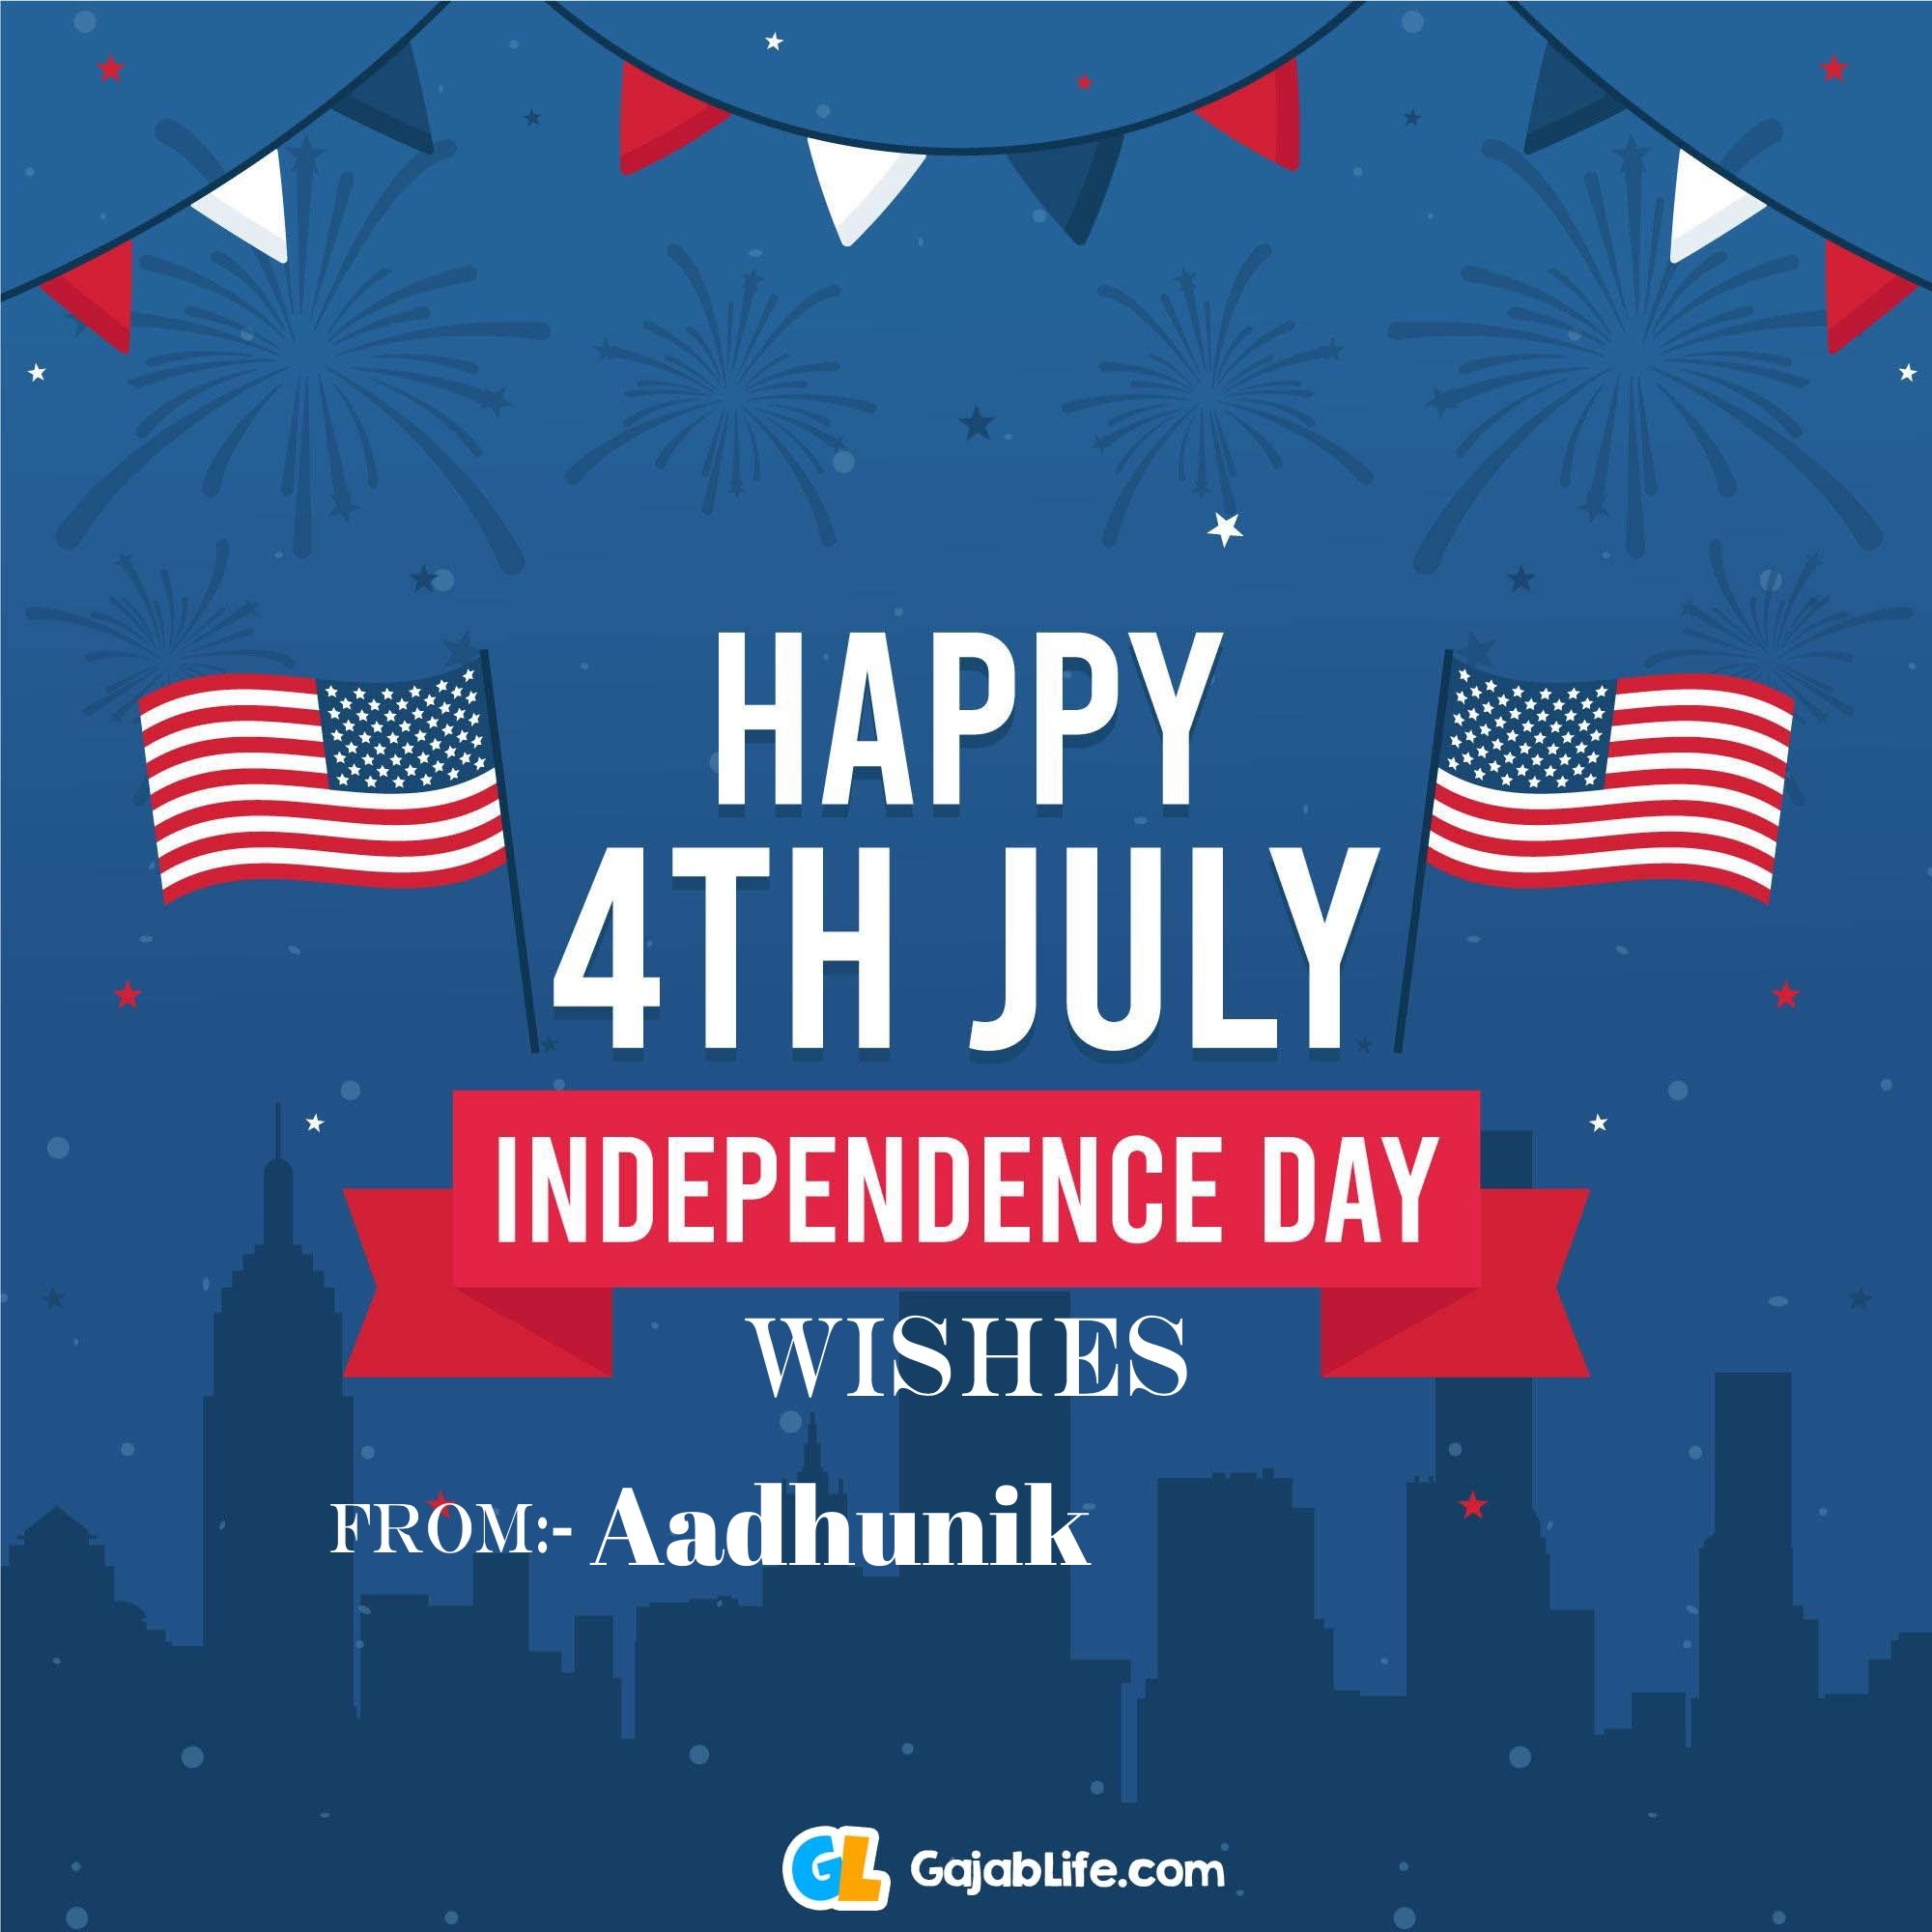 Aadhunik happy independence day united states of america images